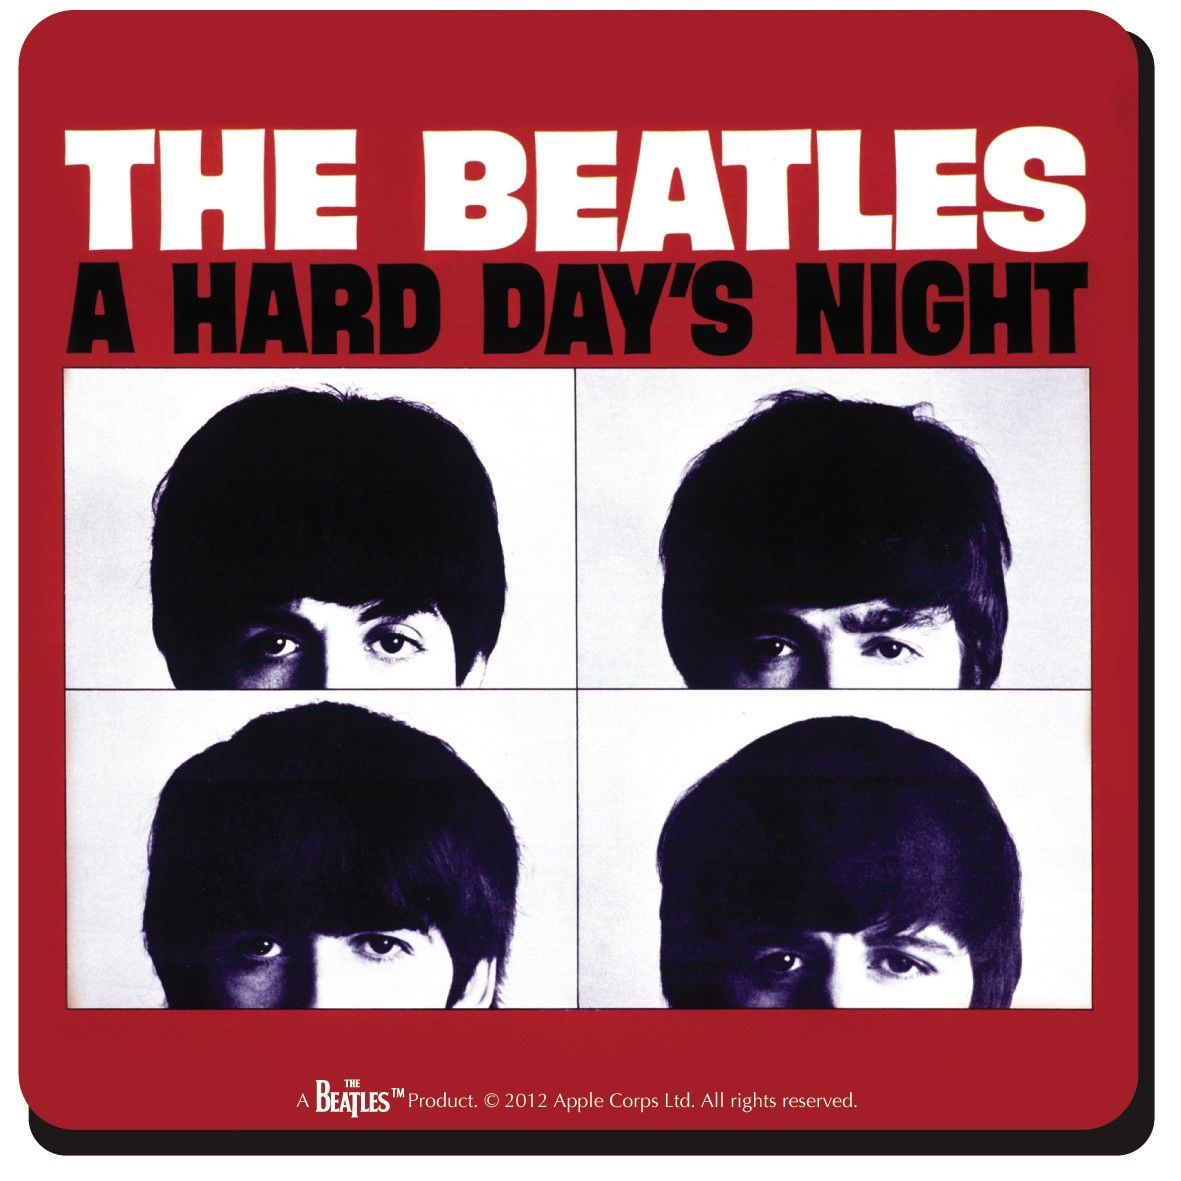 Beatles Hard Days Night Magazine | Item Details - Beatles (Hard Days Night USA) Single Coaster